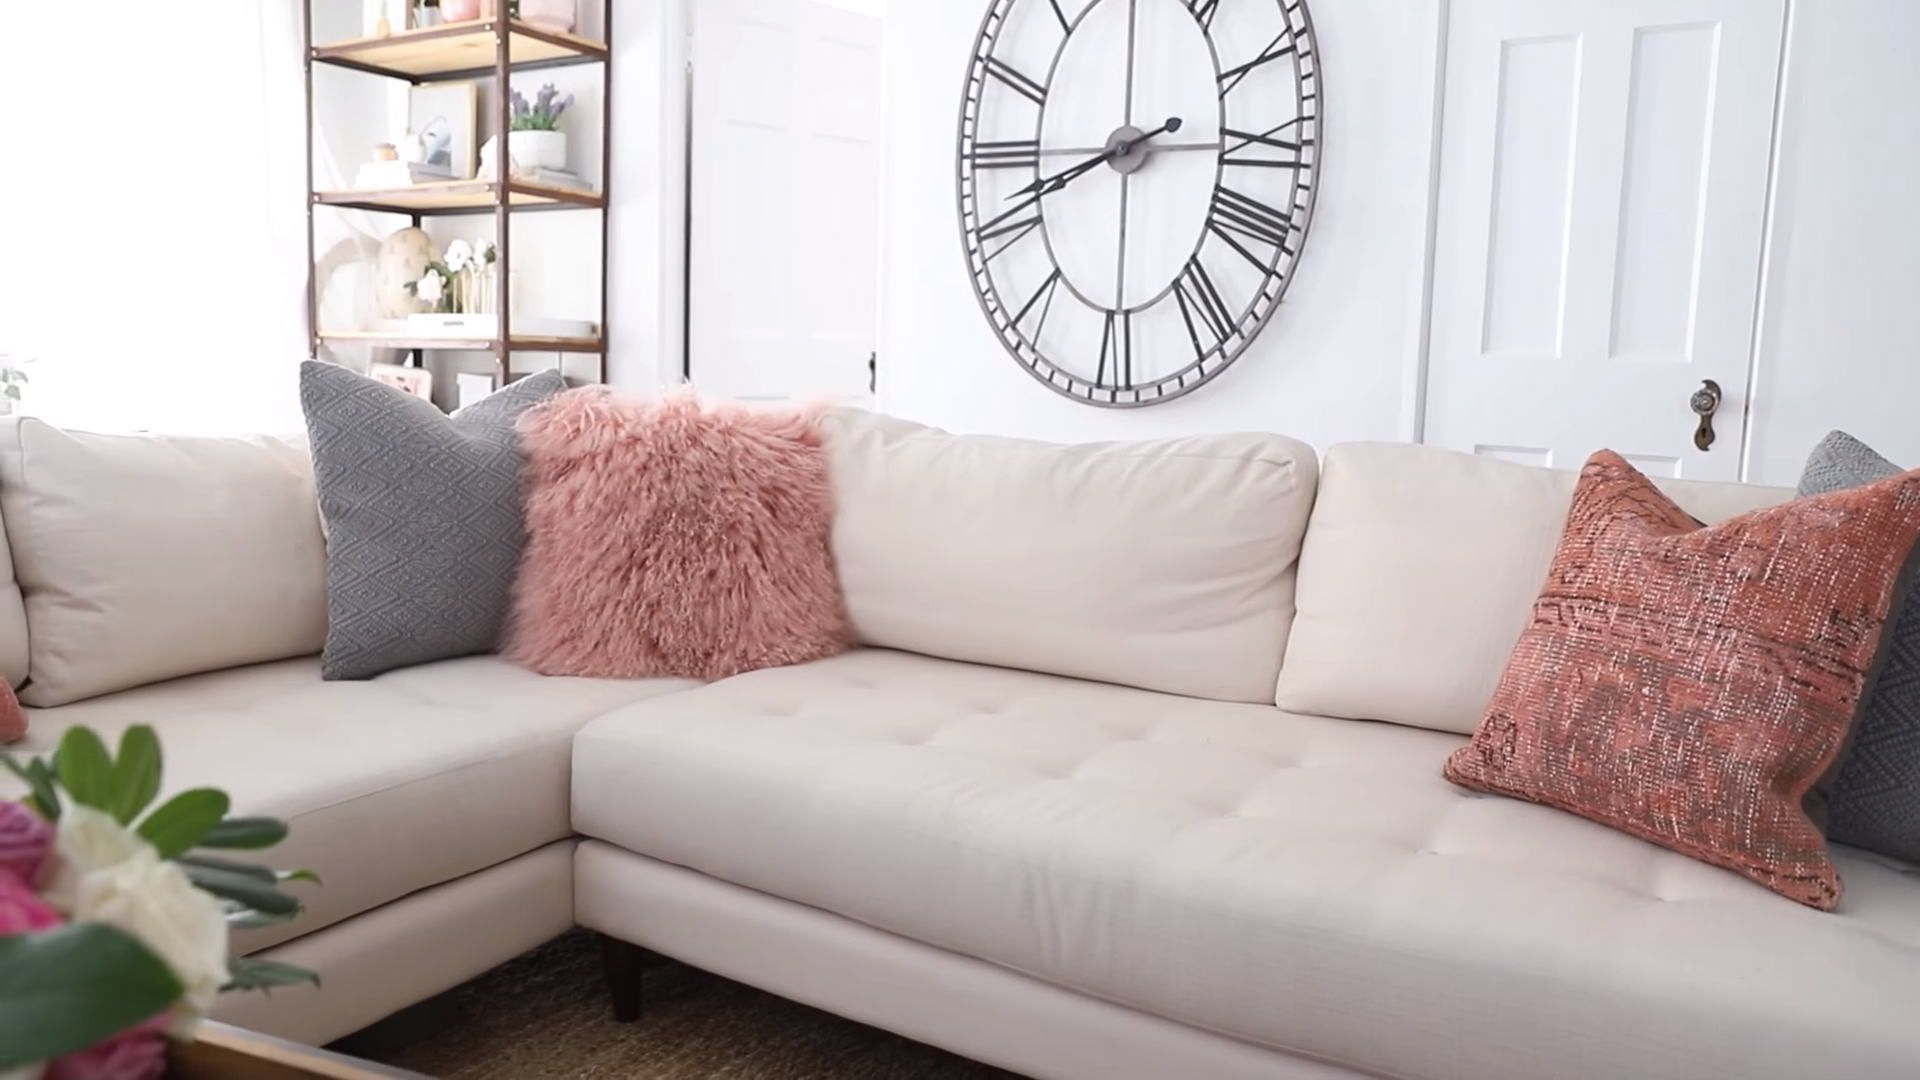 Dusty Rose Throw Pillows In Modern